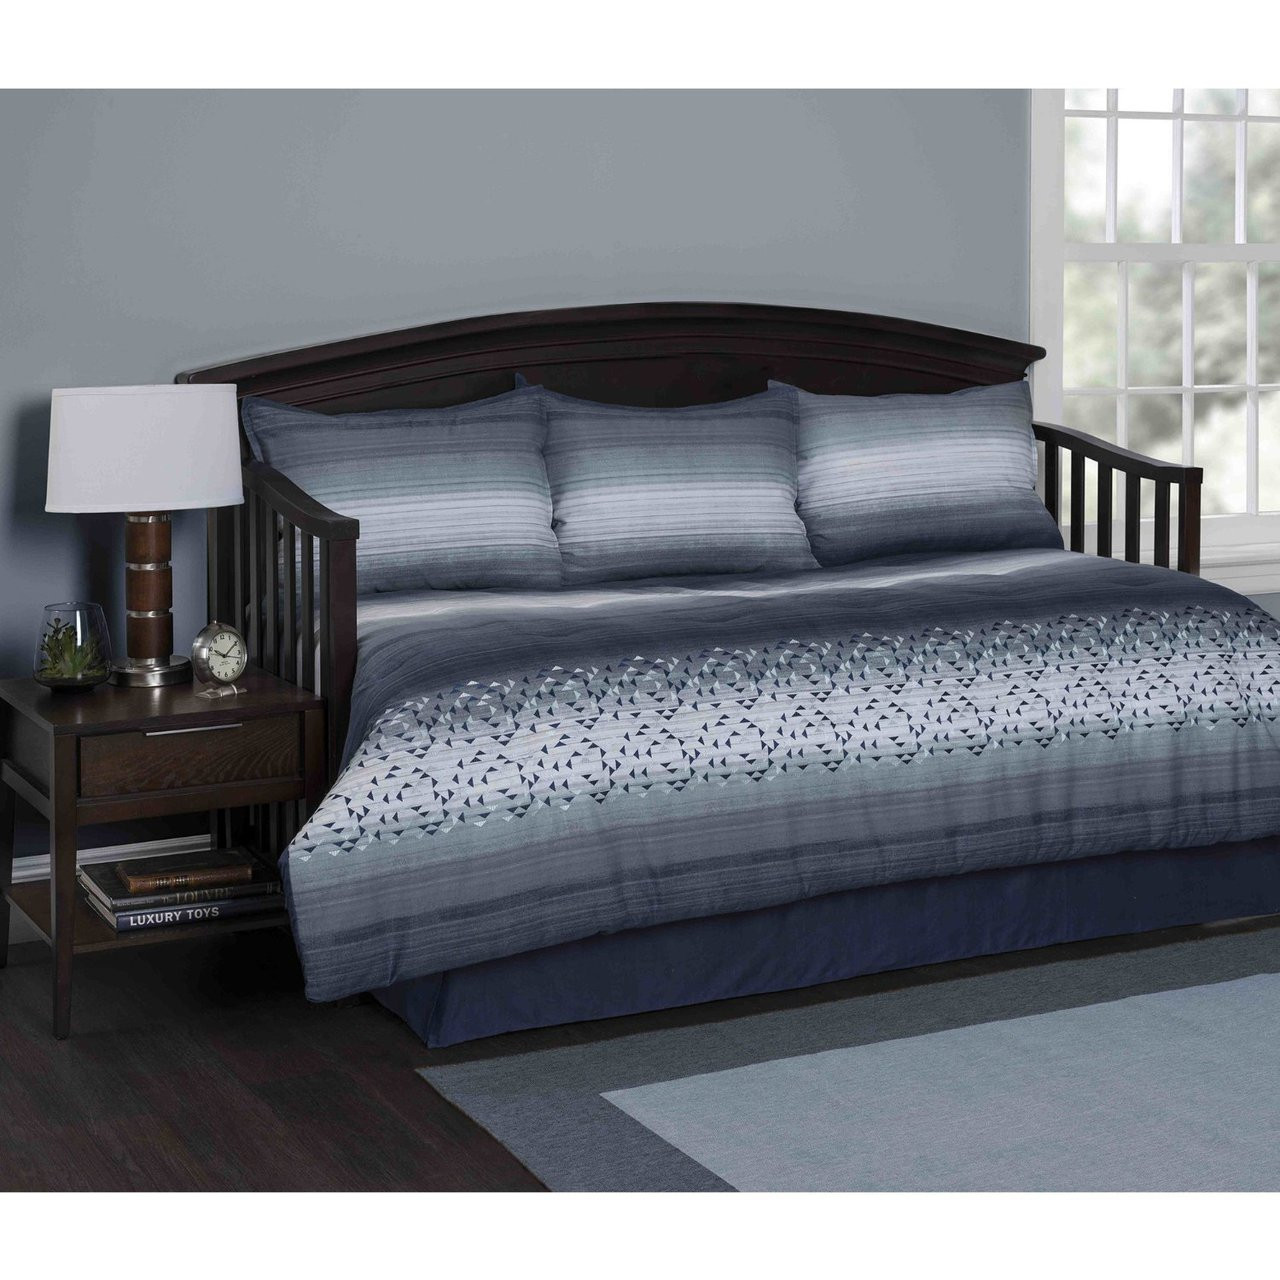 Fashion Bed Group Renee 5 Piece Comforter And Pillow Sham